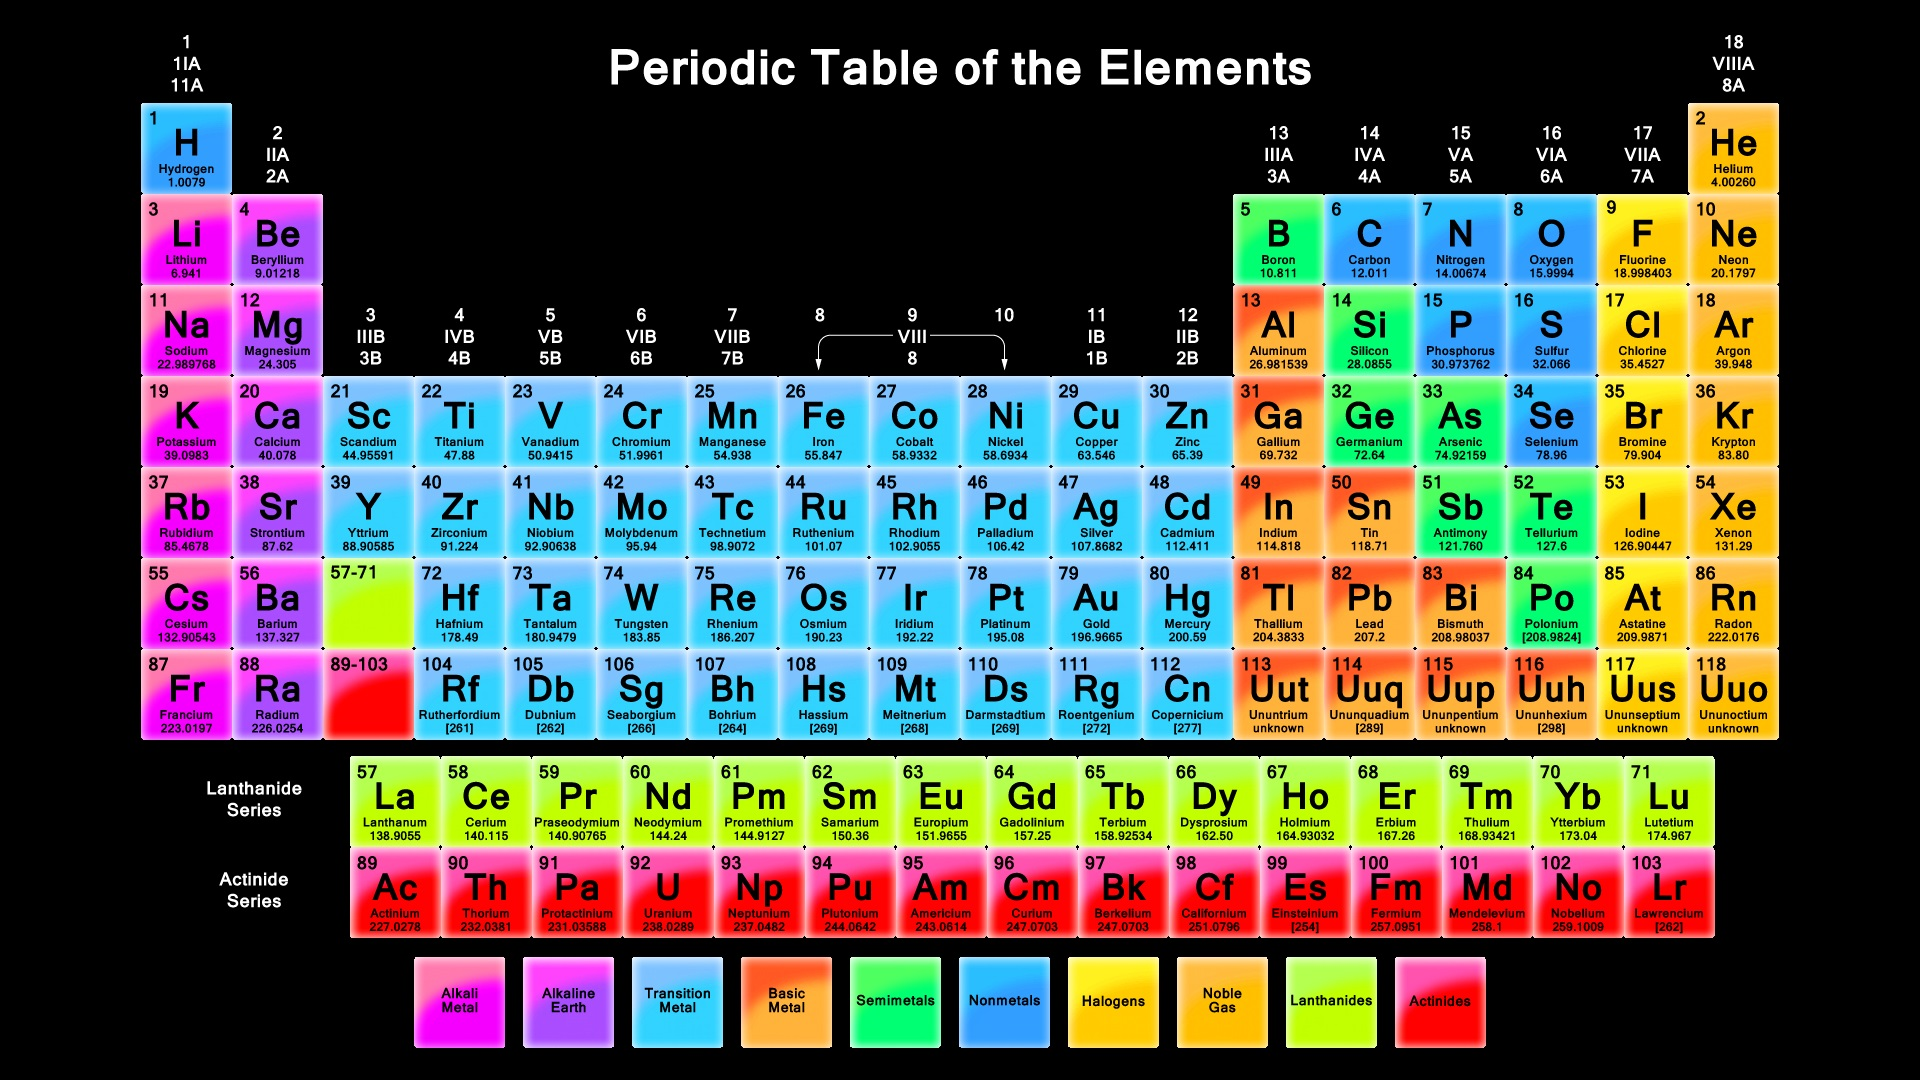 The periodic table view larger image group 1 1 valence electron group 2 2 valence electrons group 3 3 valence electrons group 4 2 to 4 valence electrons group 5 2 to 5 gamestrikefo Gallery